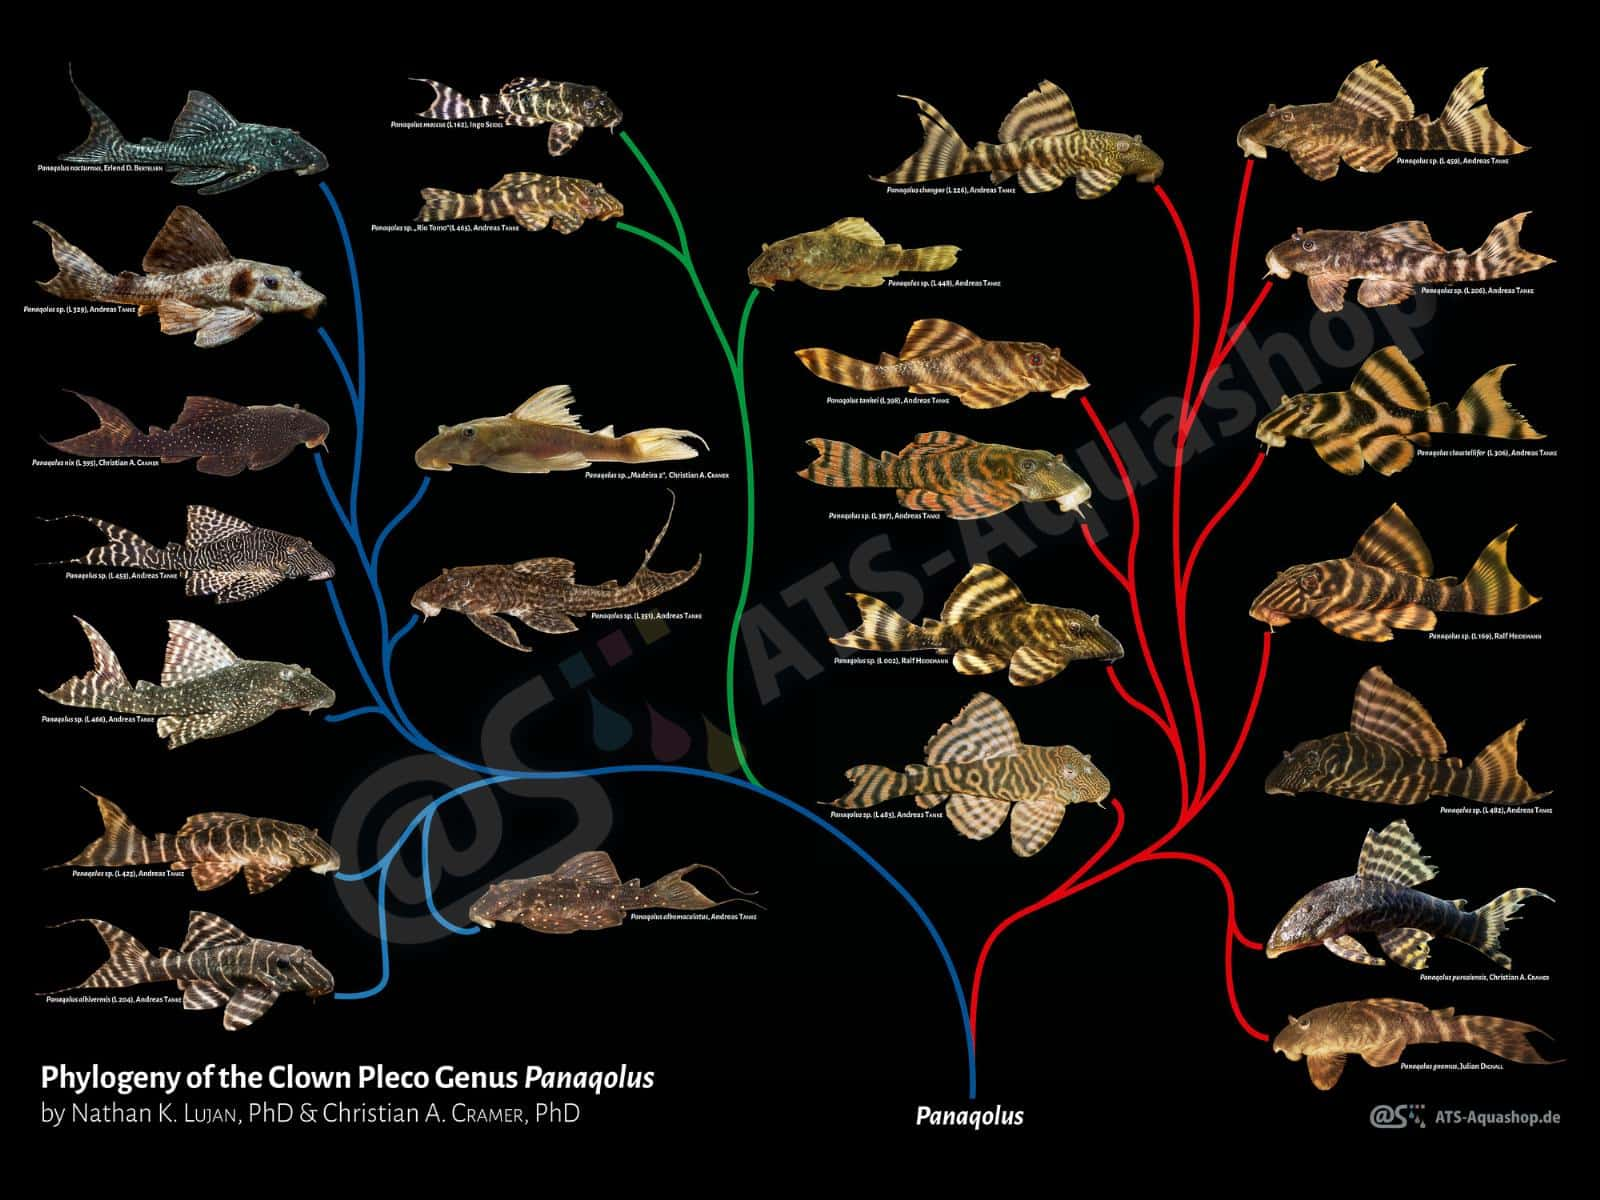 Poster: Phylogeny of the Clown Pleco Genus Panaqolus (ATS Aquashop (div.))